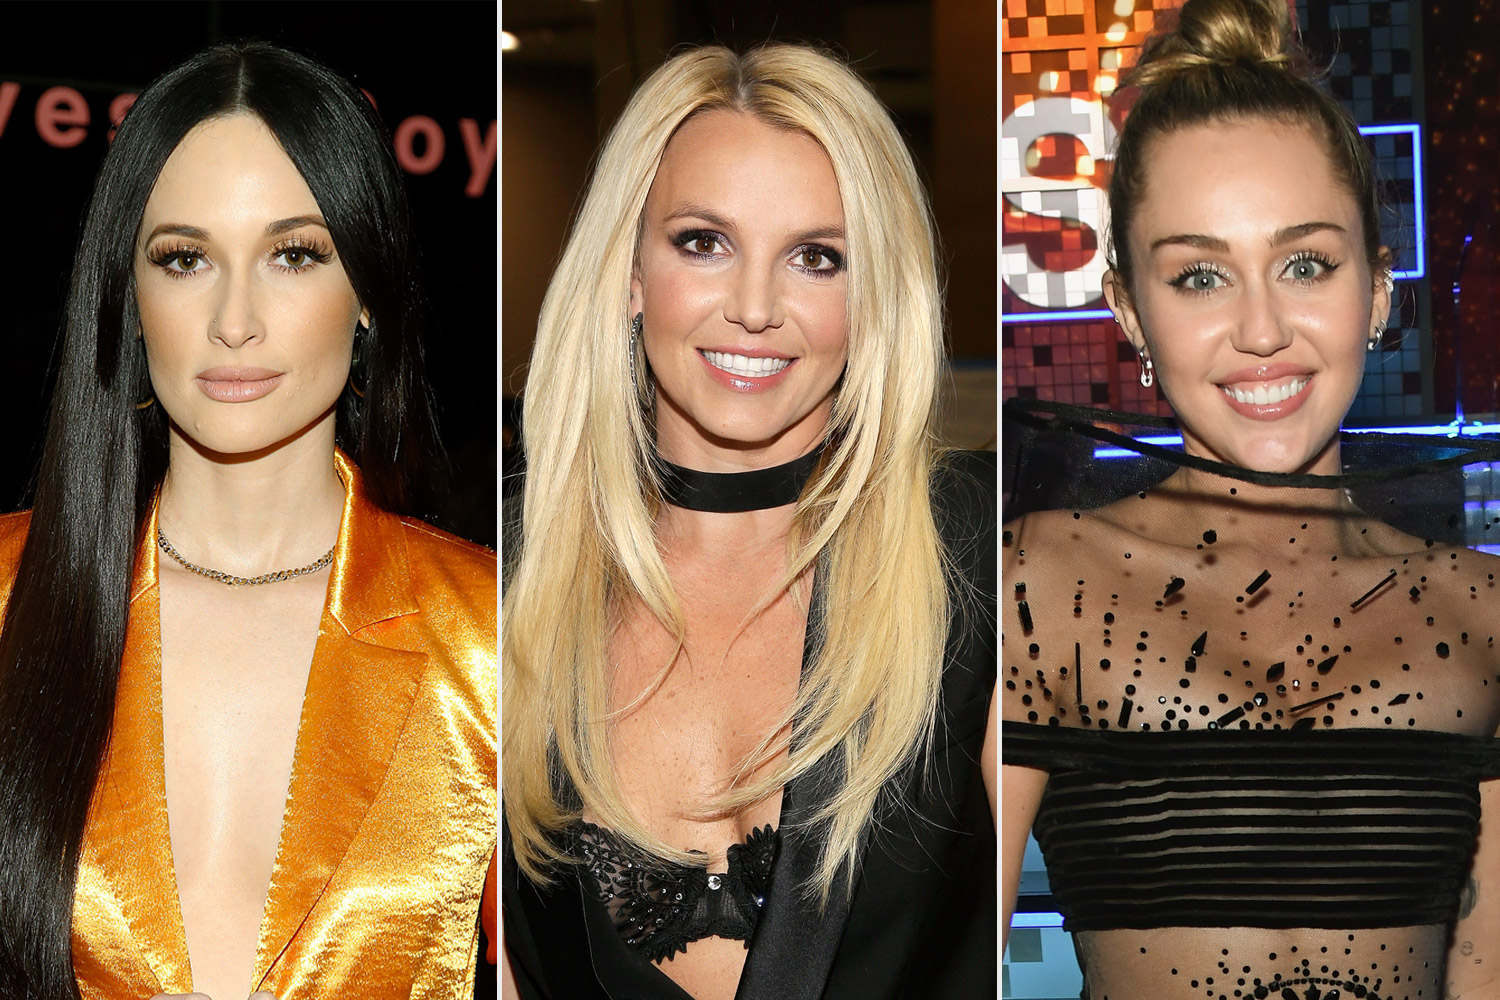 Kacey Musgraves, Britney Spears and Miley Cyrus